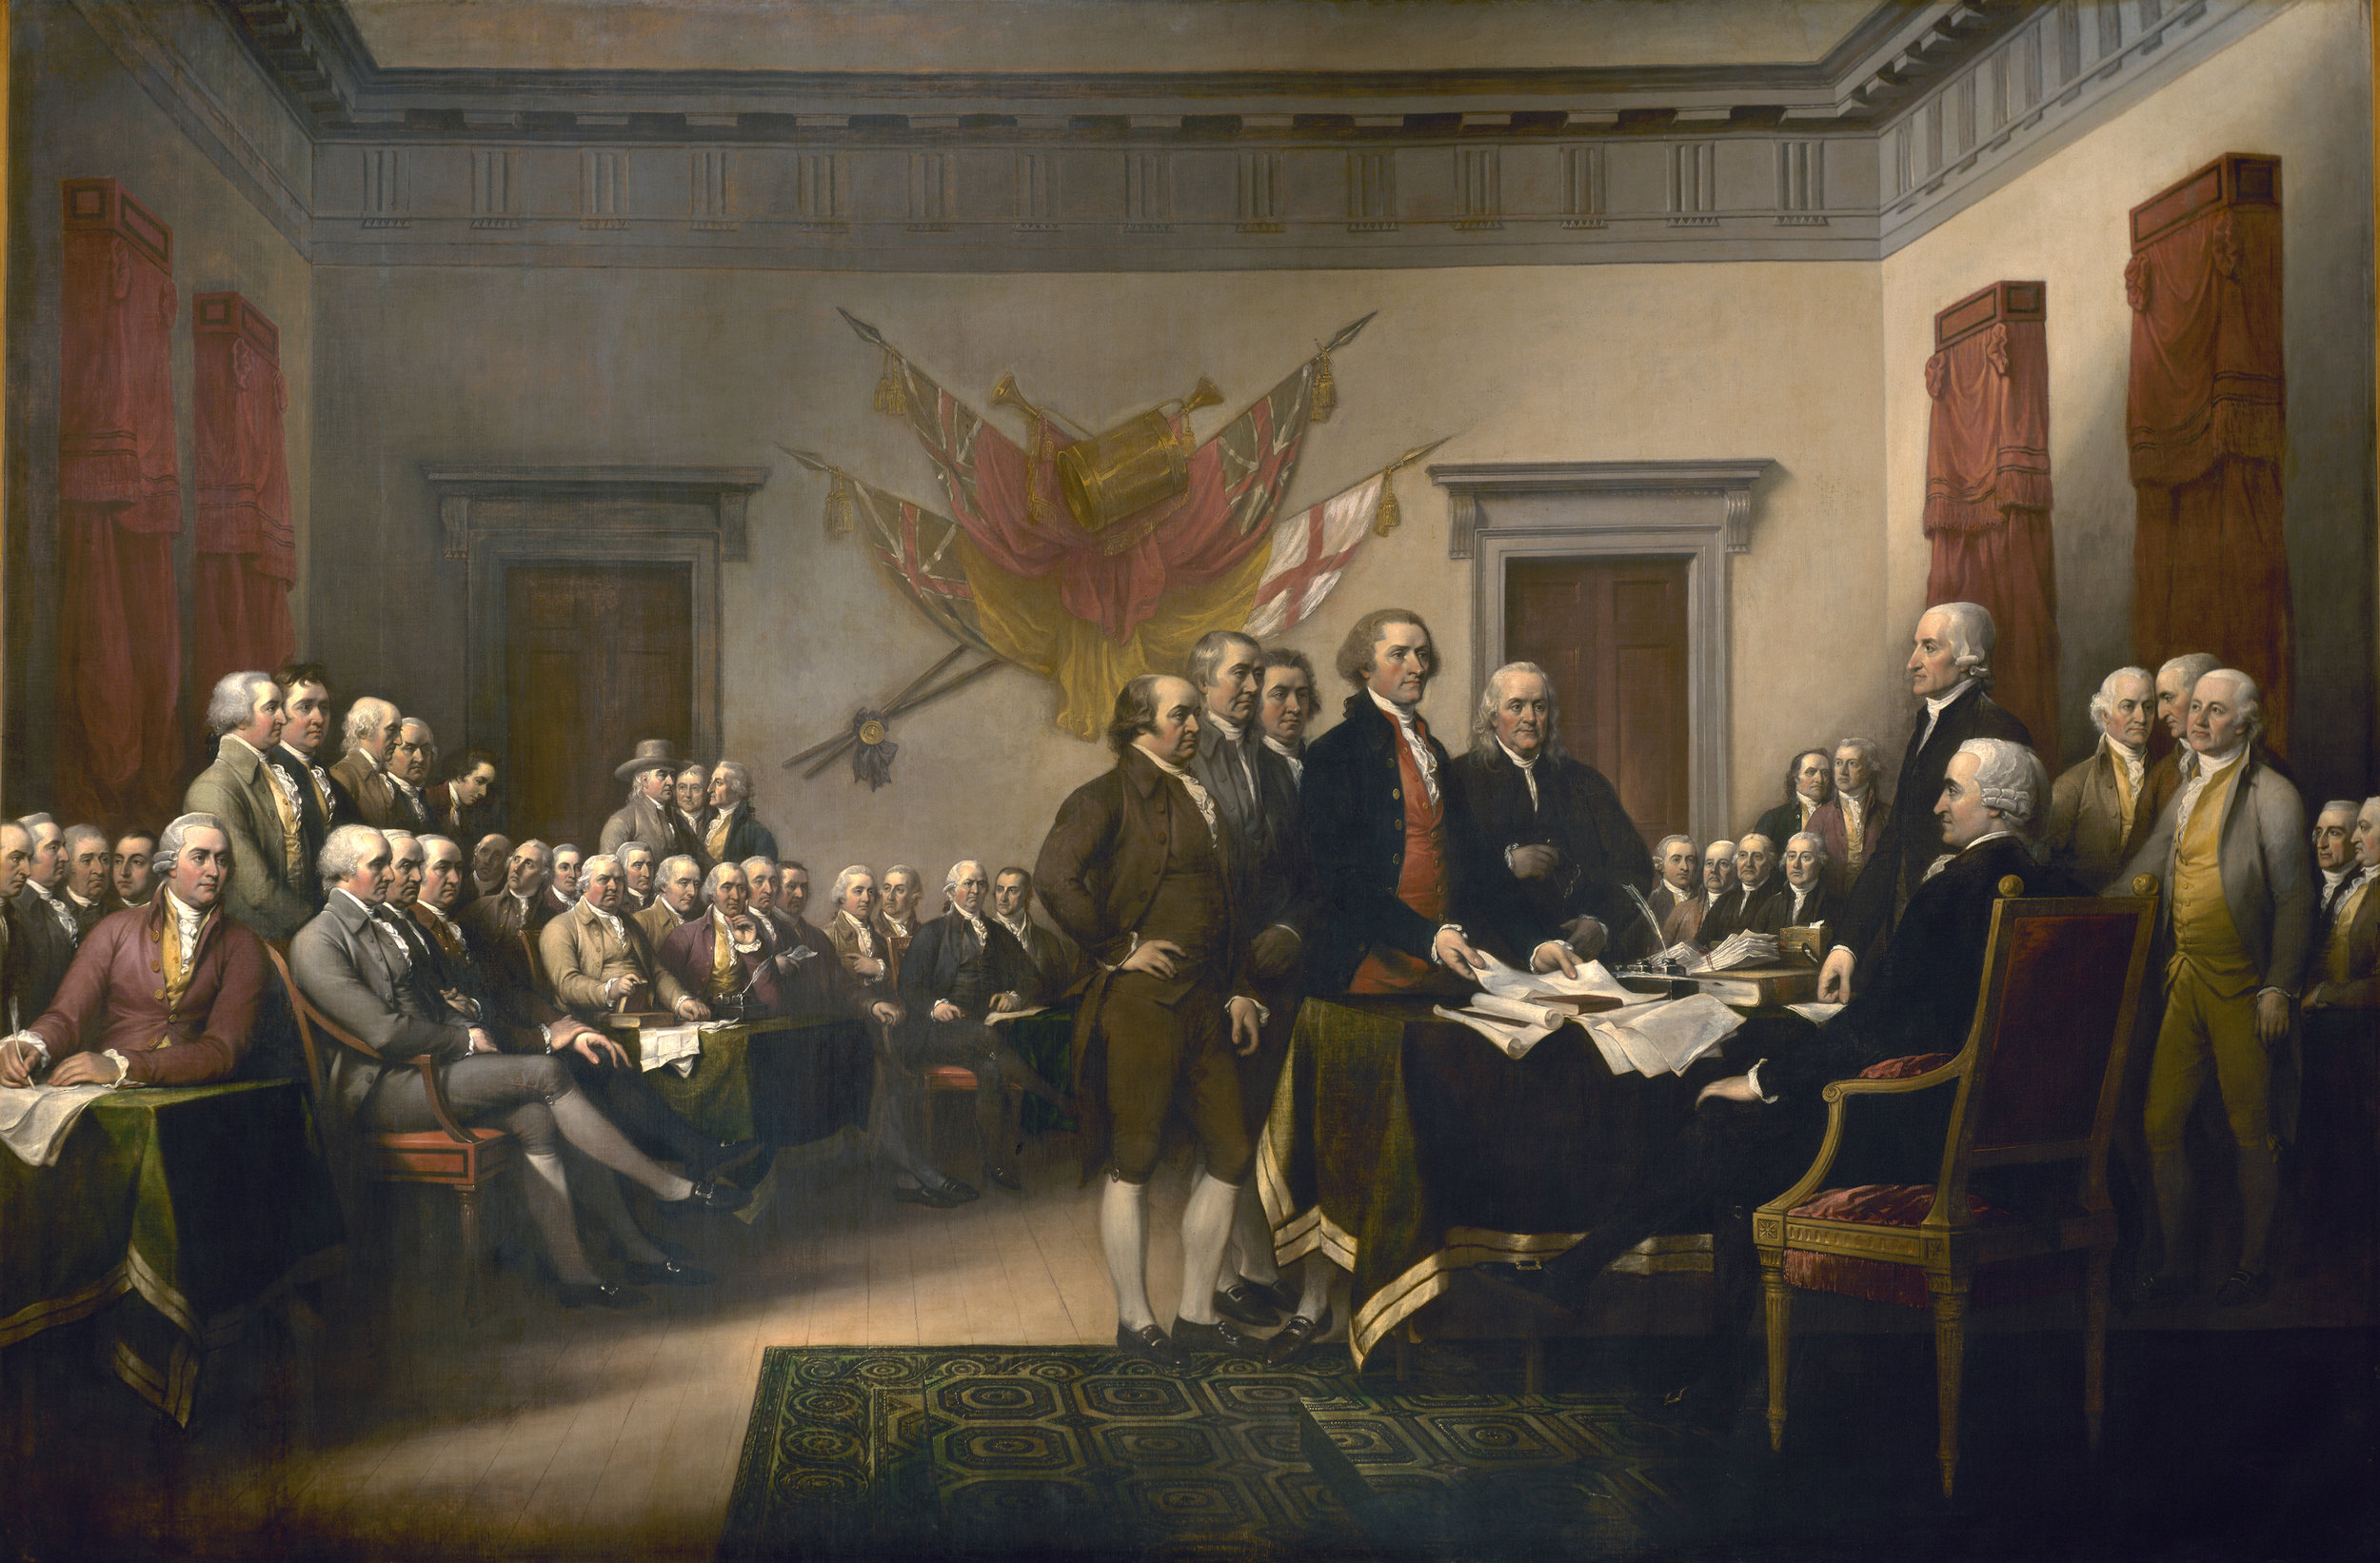 The Committee of Five present their work, June 1776 (John Trumbull, 1819)